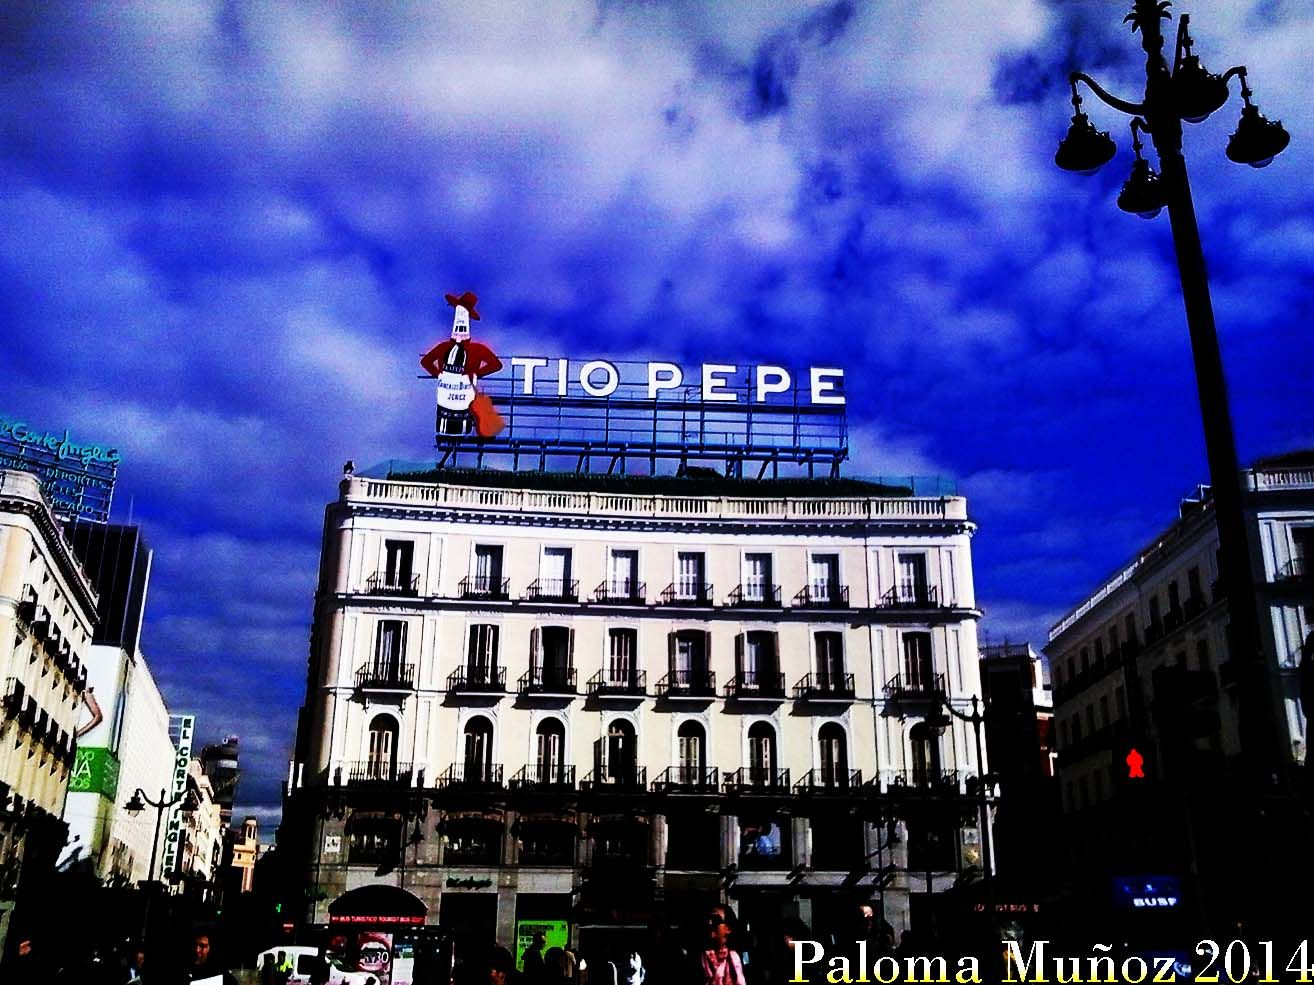 "Famoso anuncio de ""Tío Pepe"" ahora situado frente al edificio de la Presidencia de La Comunidad de Madrid. famous Tio Pepe sign, located opposite the seat of the Presidency of the Community of Madrid"